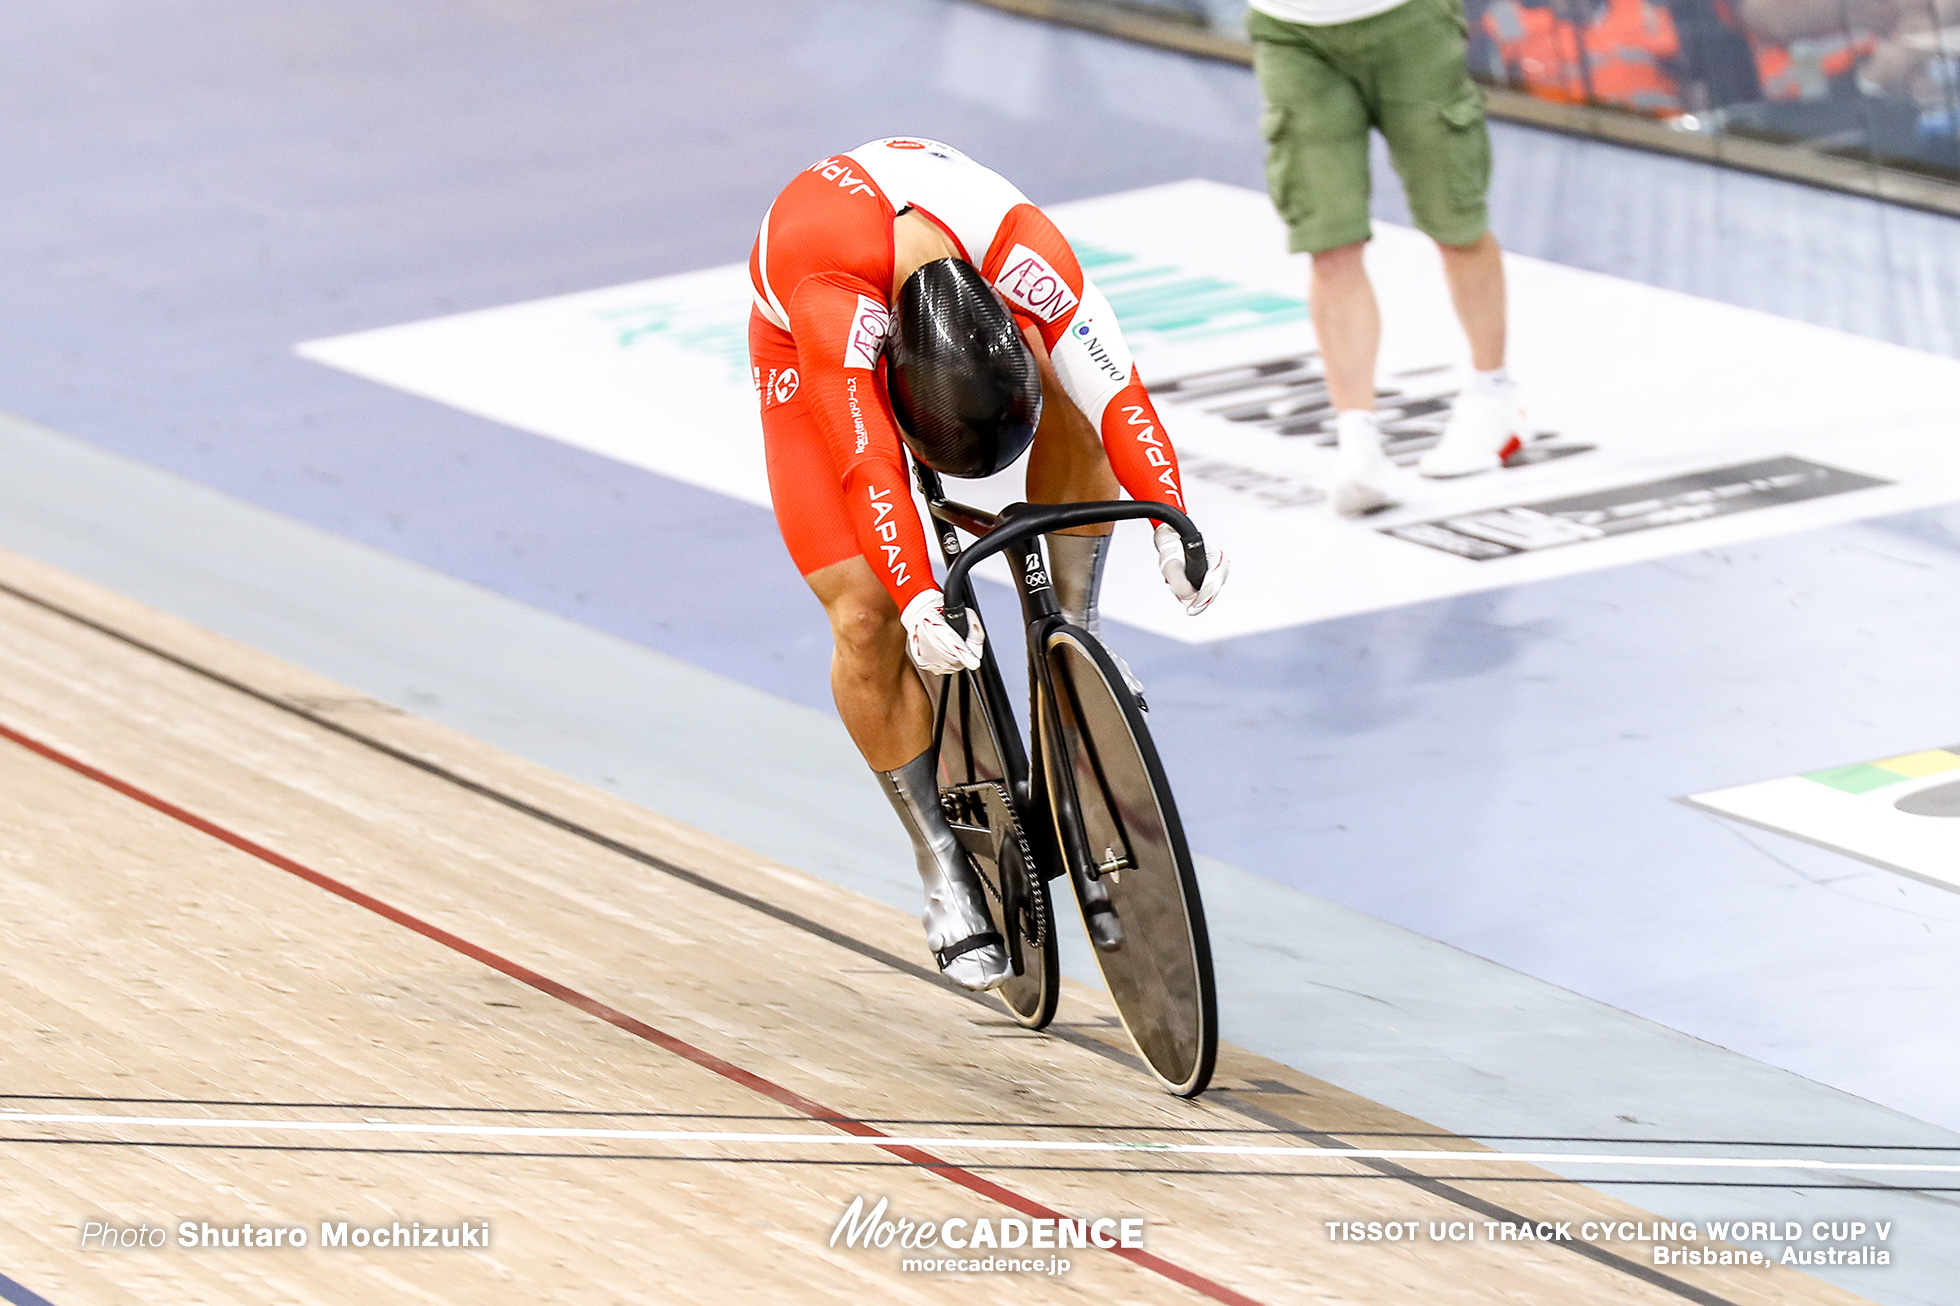 Final / Men's Team Sprint / TISSOT UCI TRACK CYCLING WORLD CUP V, Brisbane, Australia, 深谷知広